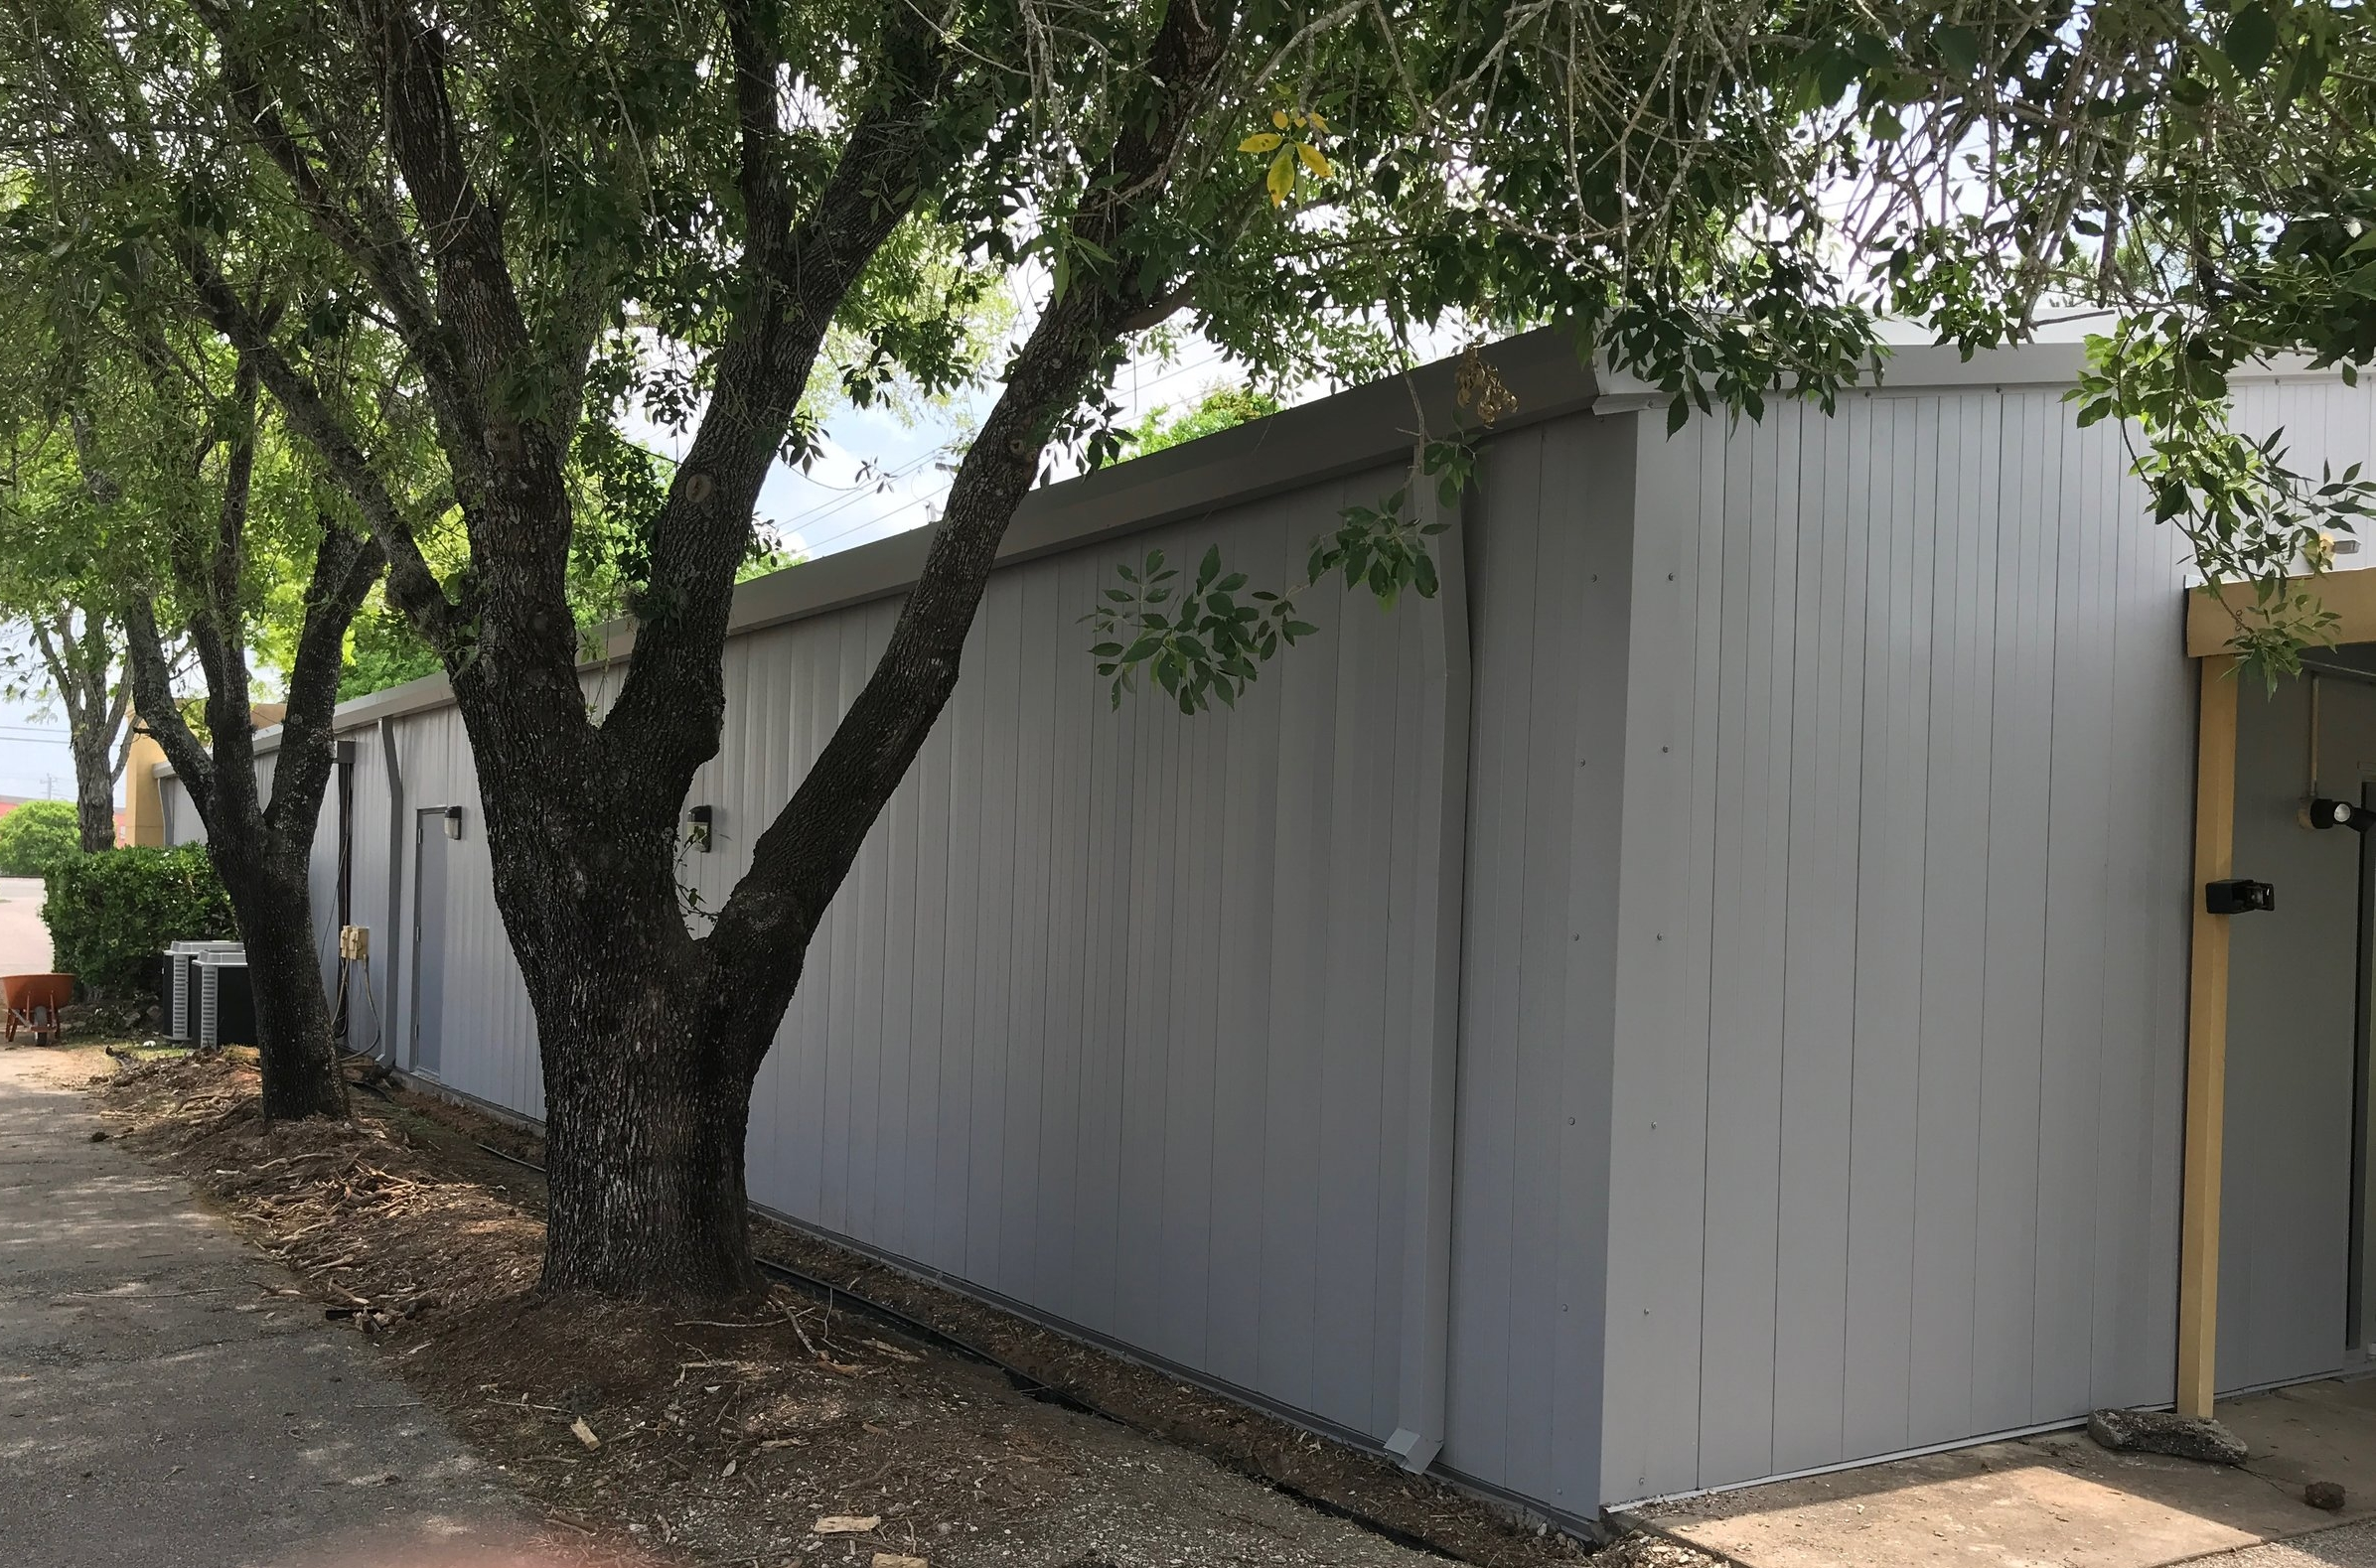 Finished wall panel and gutter replacement, One of many metal wall panel replacement options